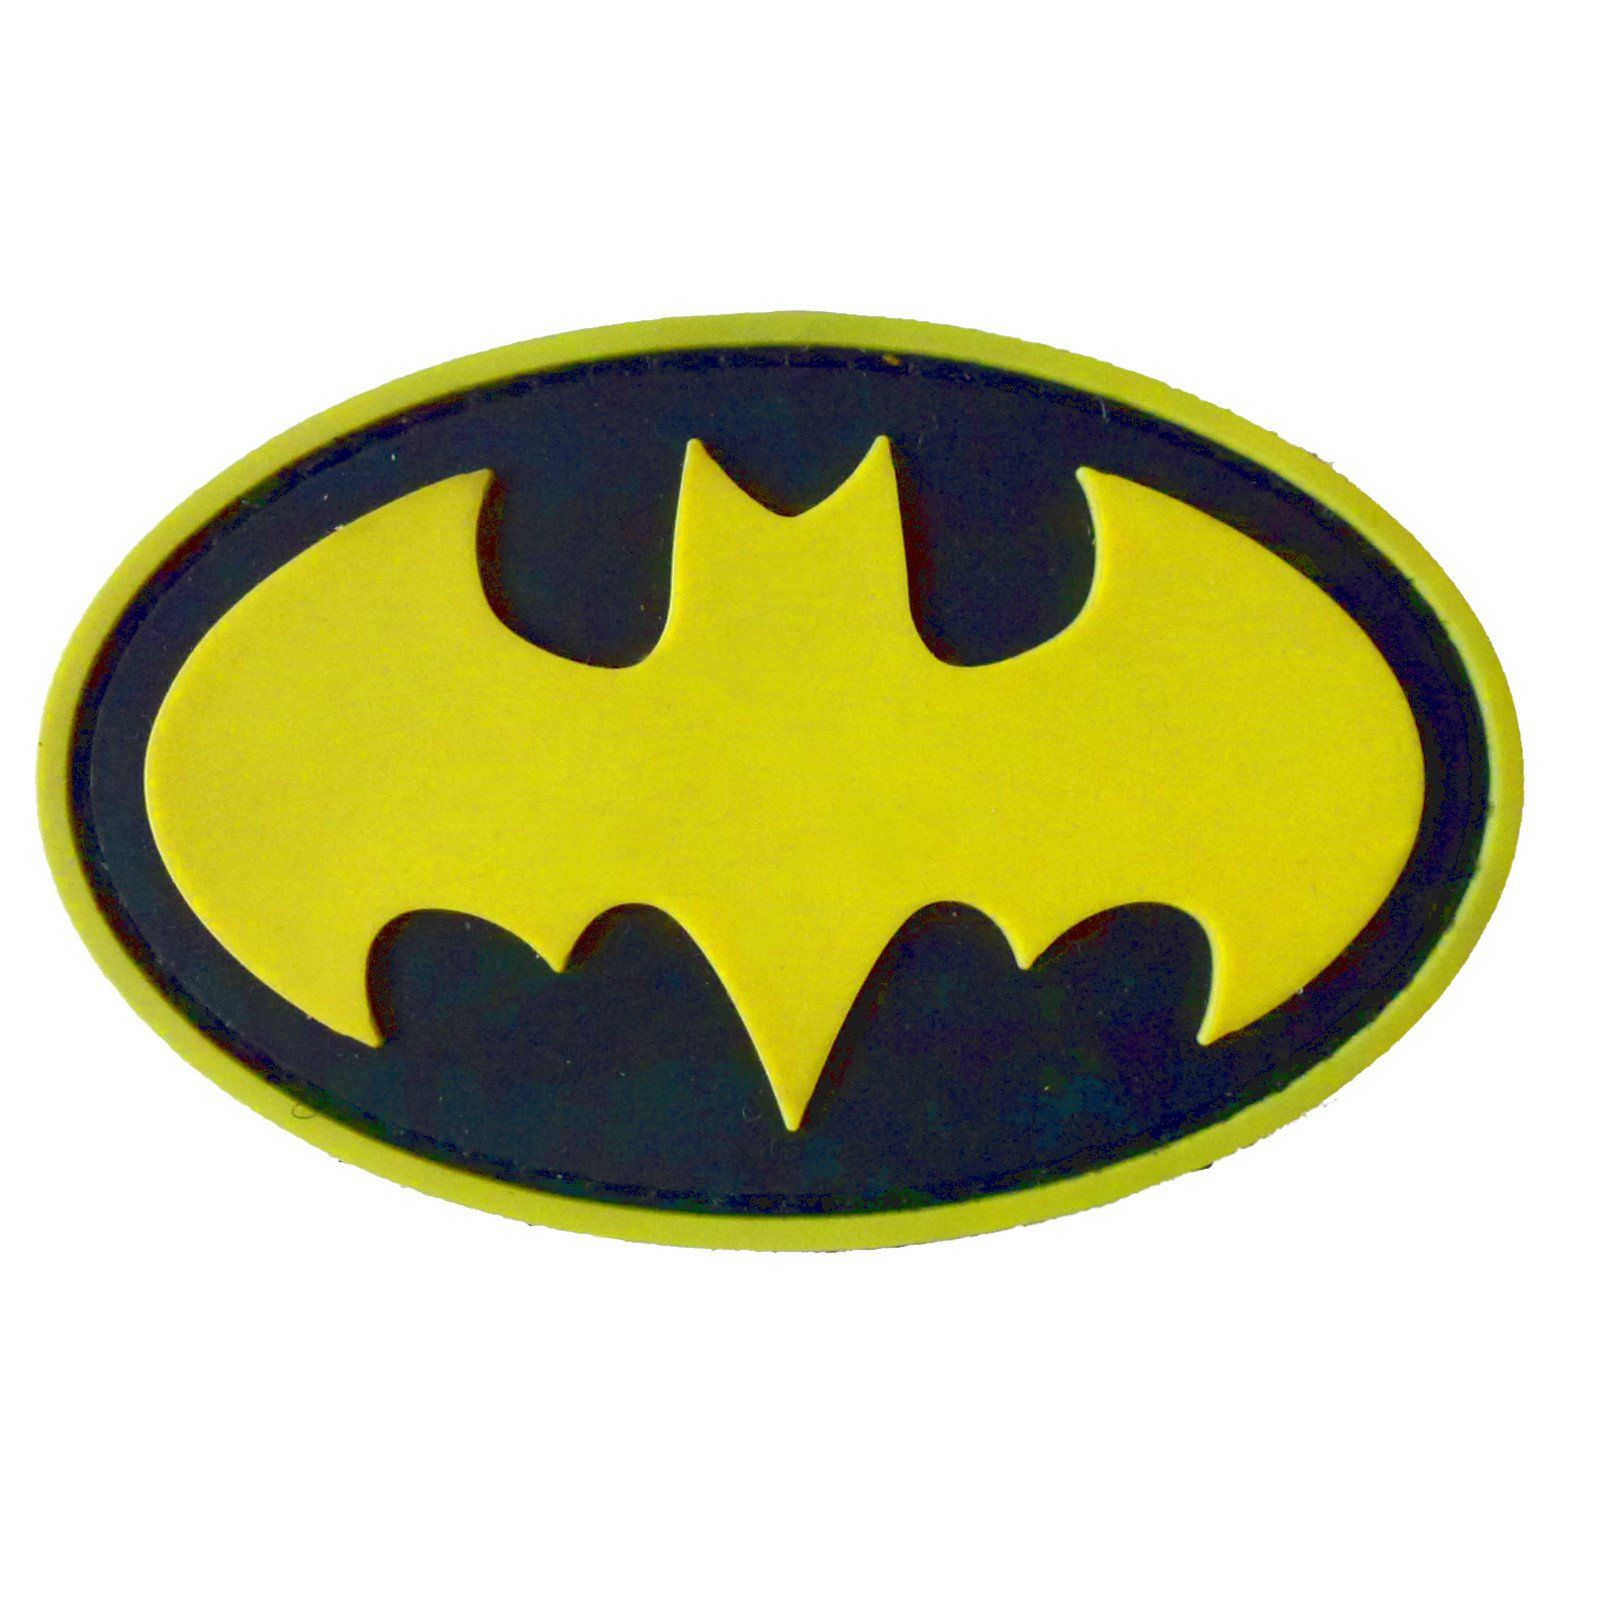 Batman Pvc Rubber 3d Velcro Patch Bat Morale Tactical Batman